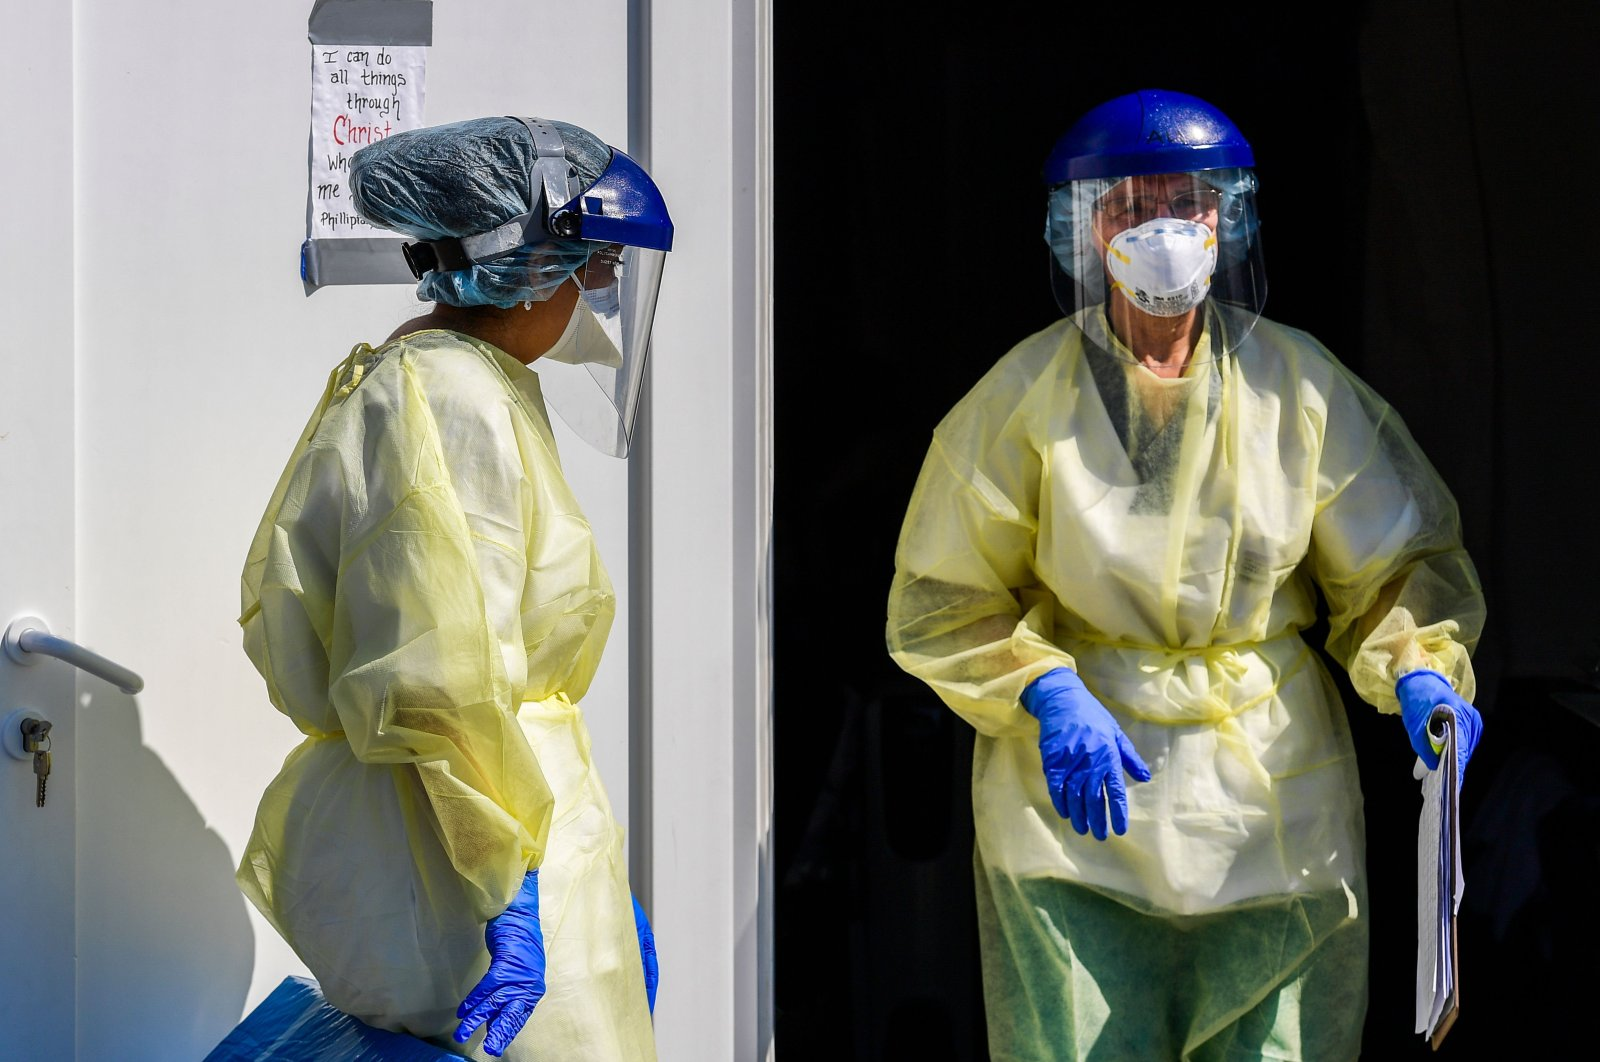 Medical staff is pictured while working at an operative field hospital for coronavirus patients, Lombardy, Italy, April 2, 2020. (AFP Photo)